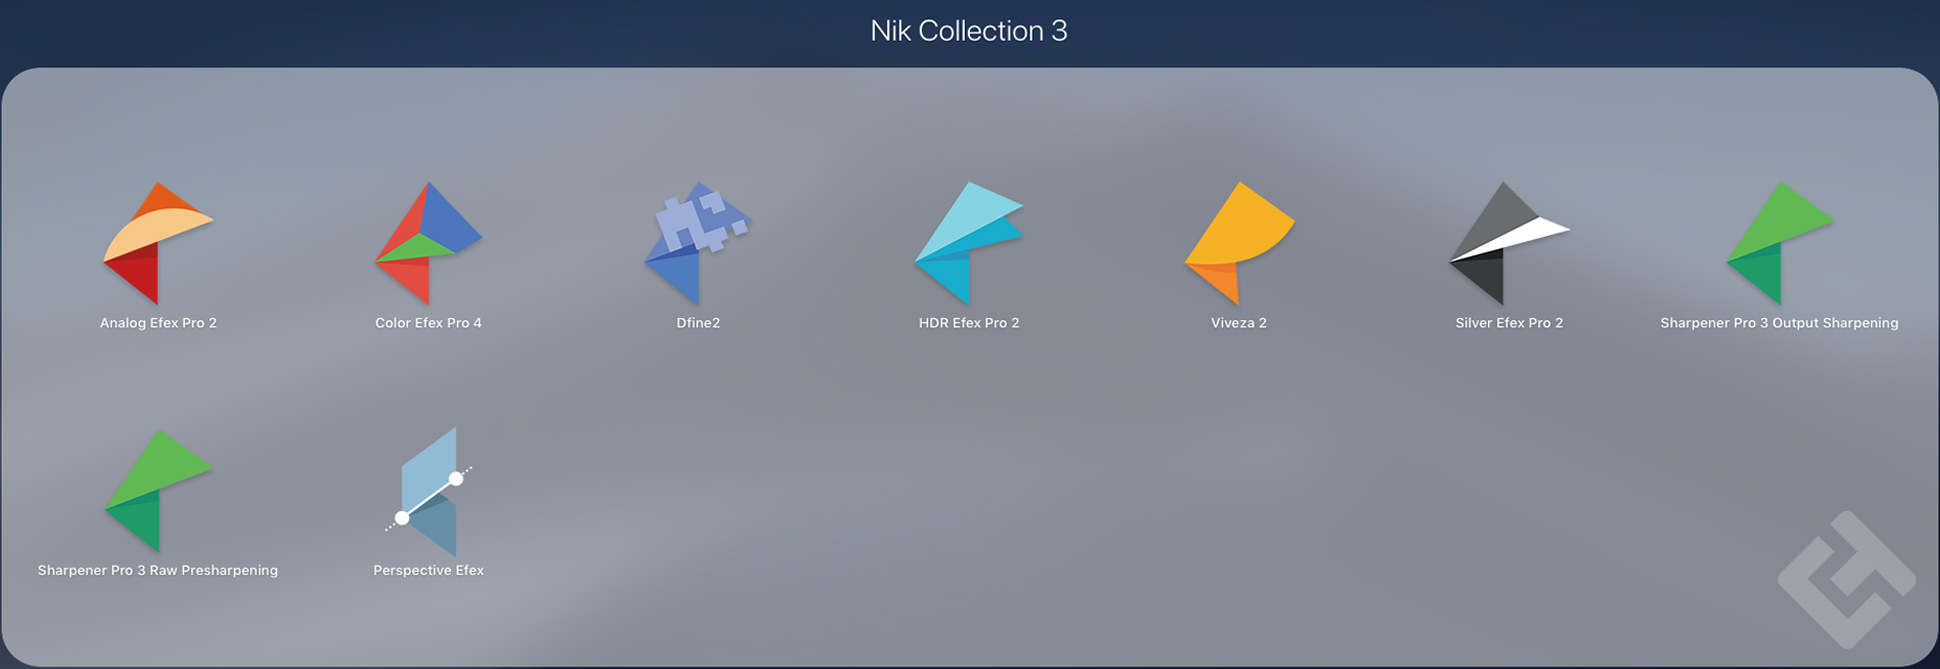 Nik Collection 3 By DxO - Plugins